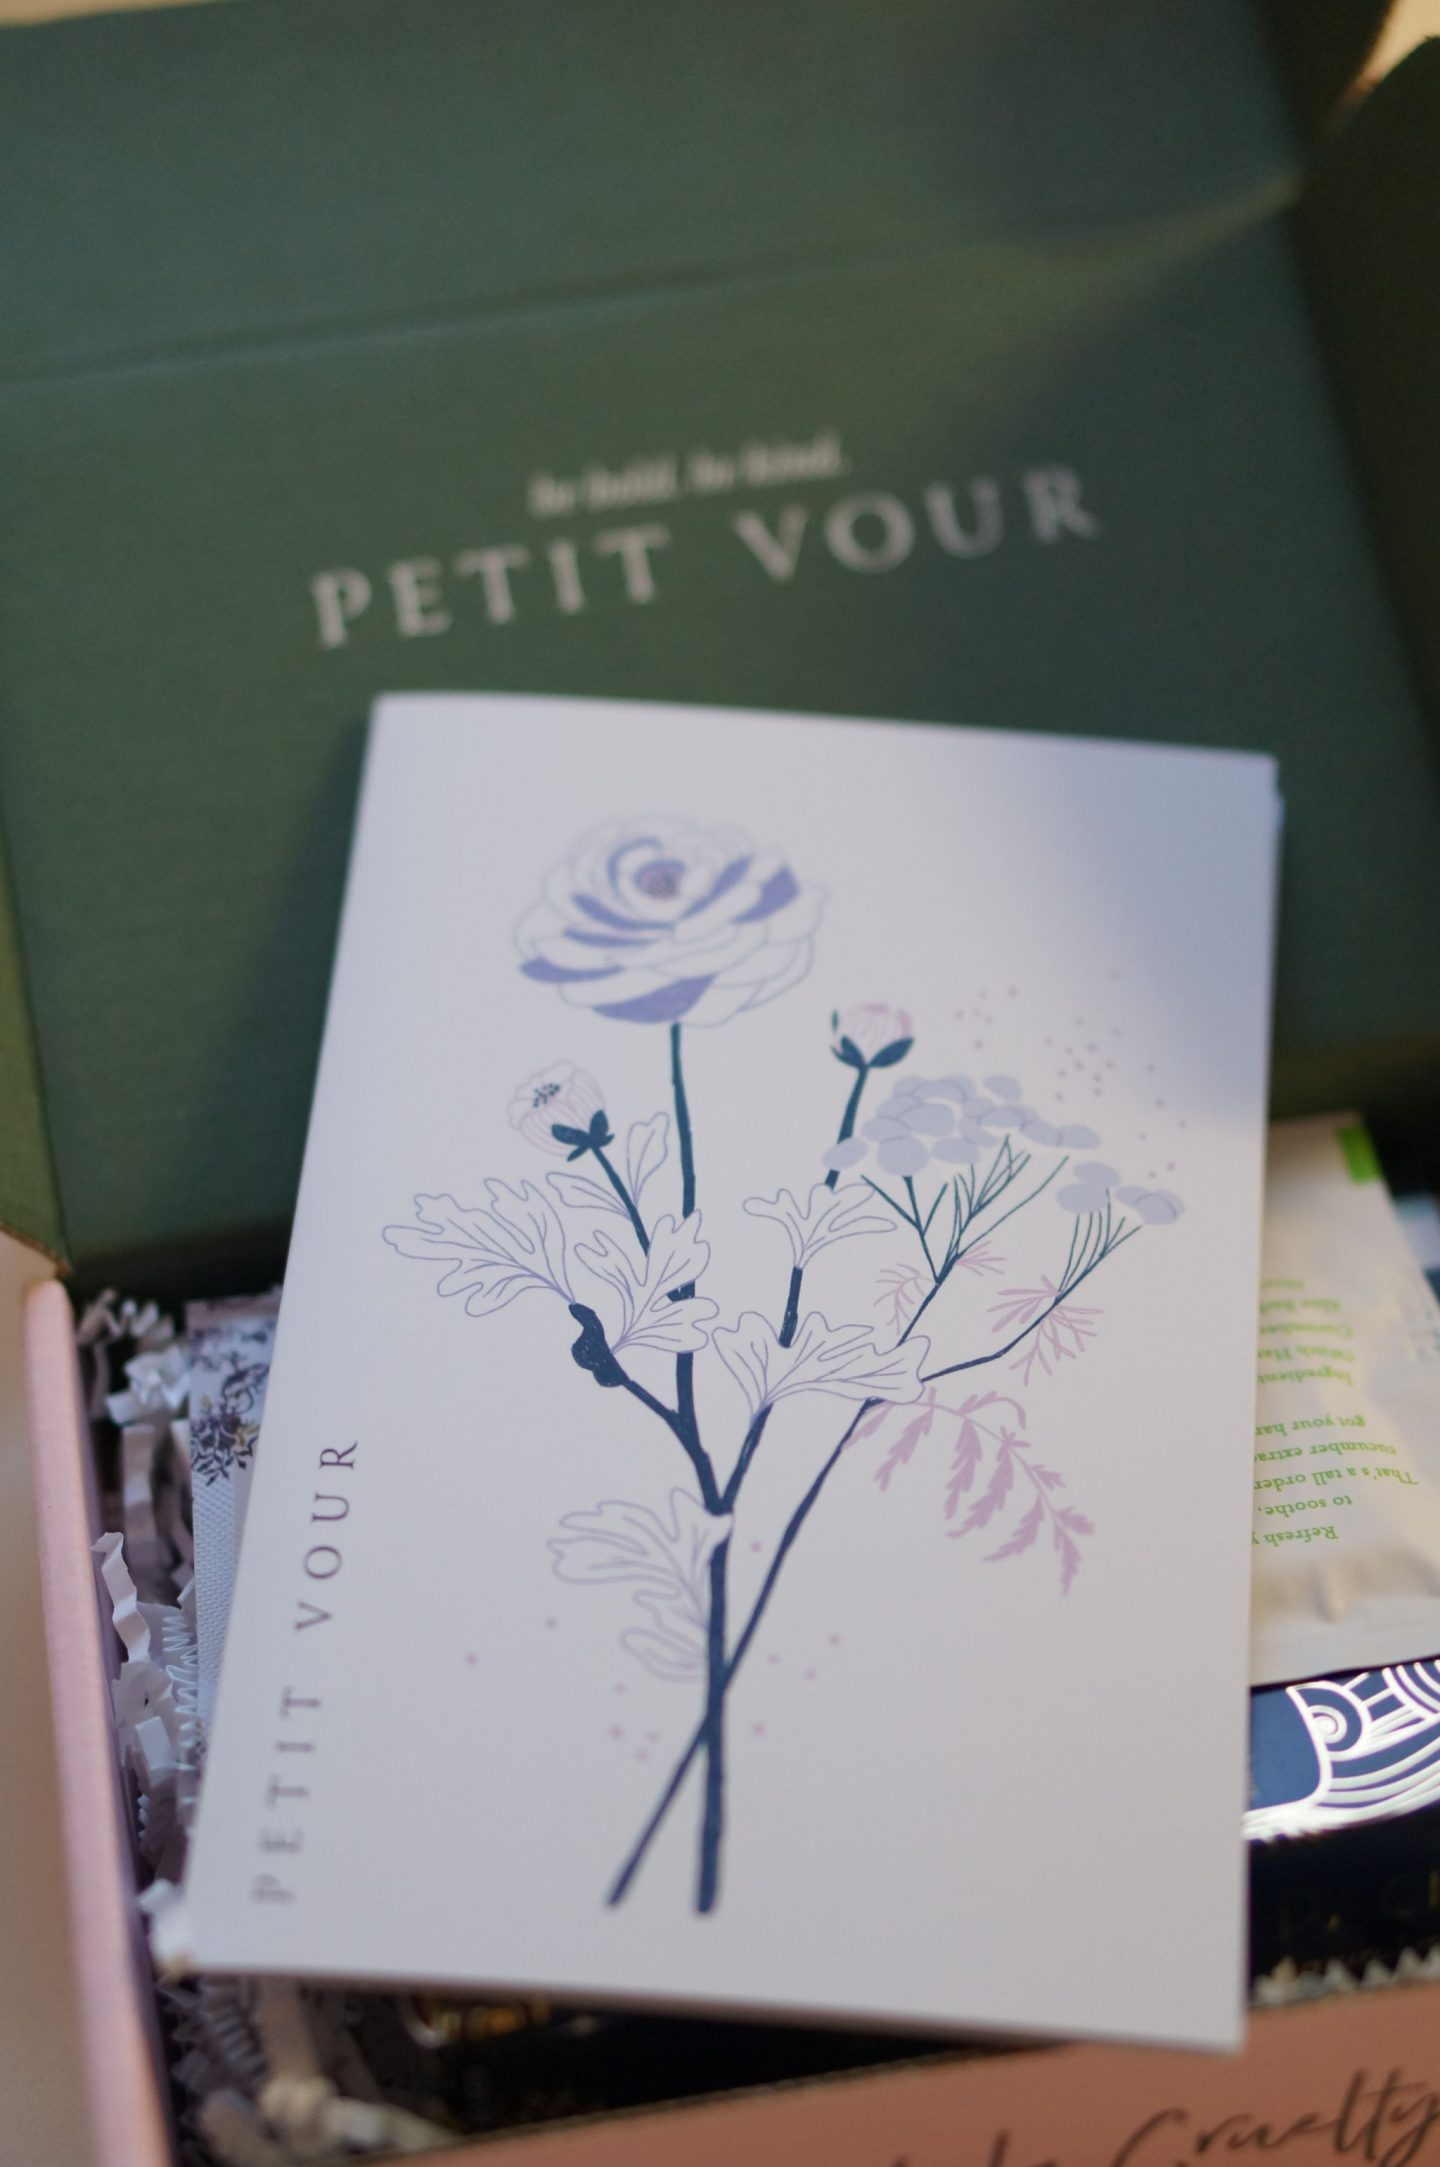 North Carolina blogger Rebecca Lately shares her mini review of the Petit Vour January 2019 box. Check out what she loved and what she didn't!